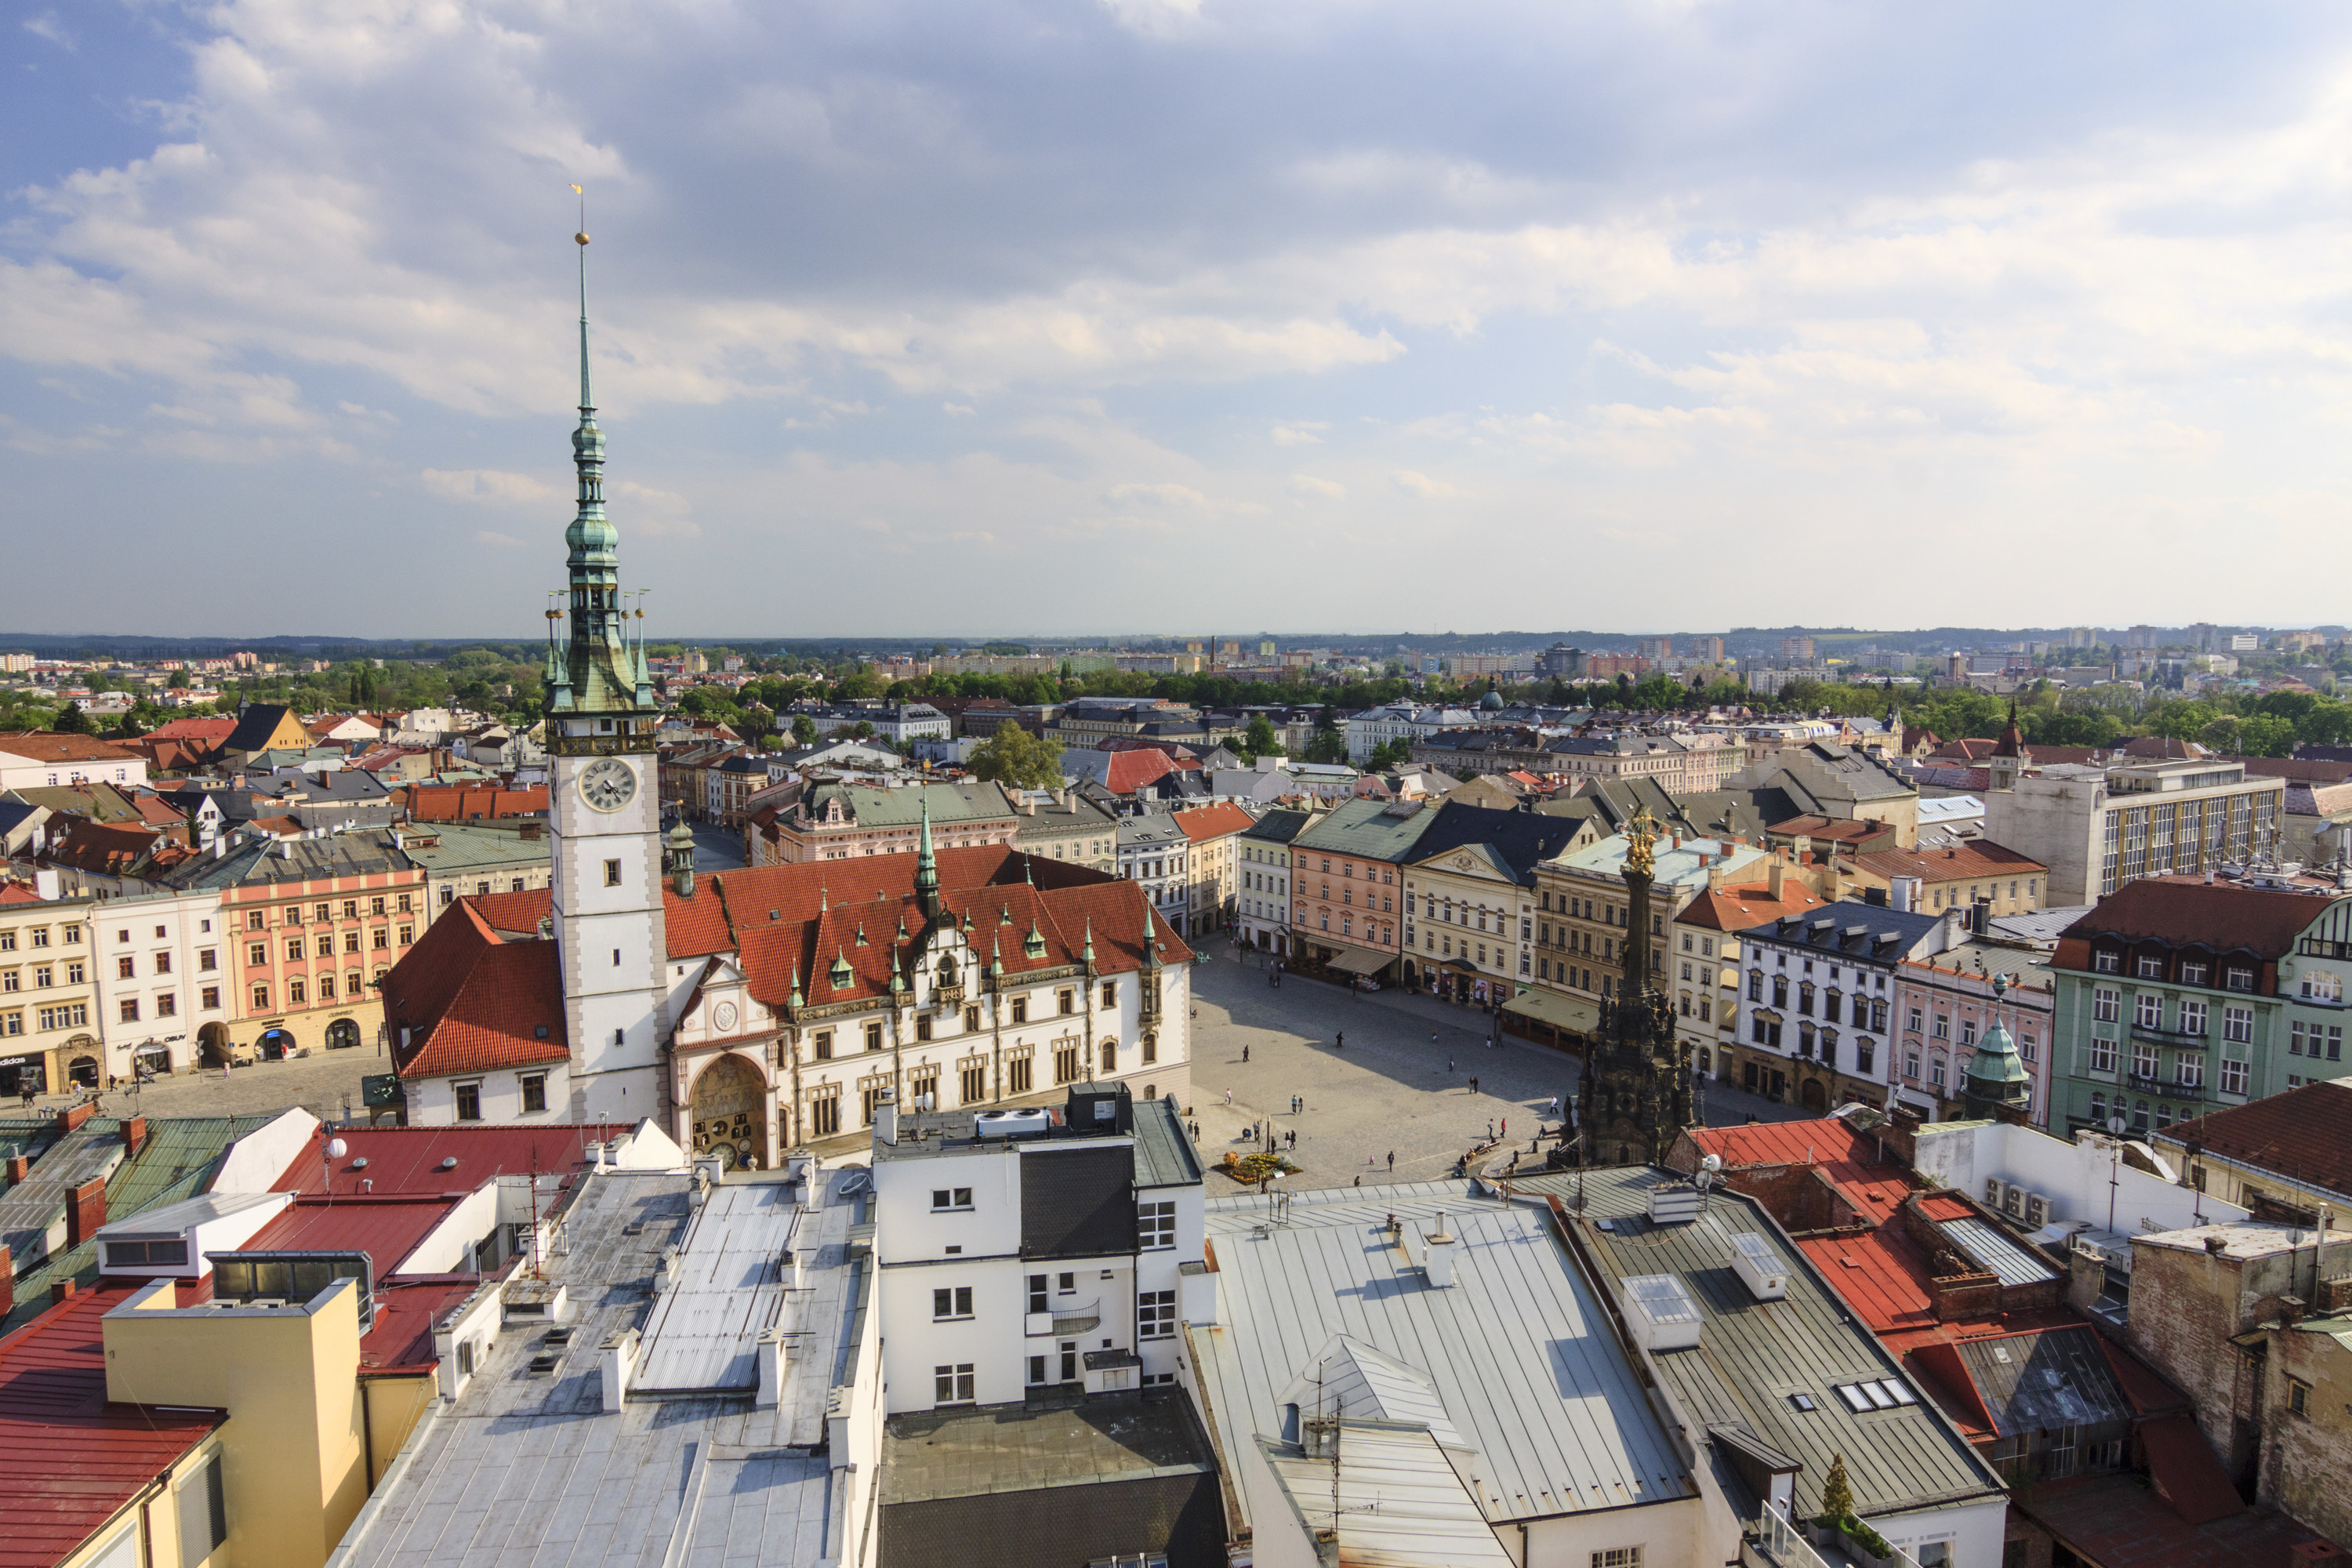 Aerial view of Olomouc, showing a grand plaza with various charming architecture on show.